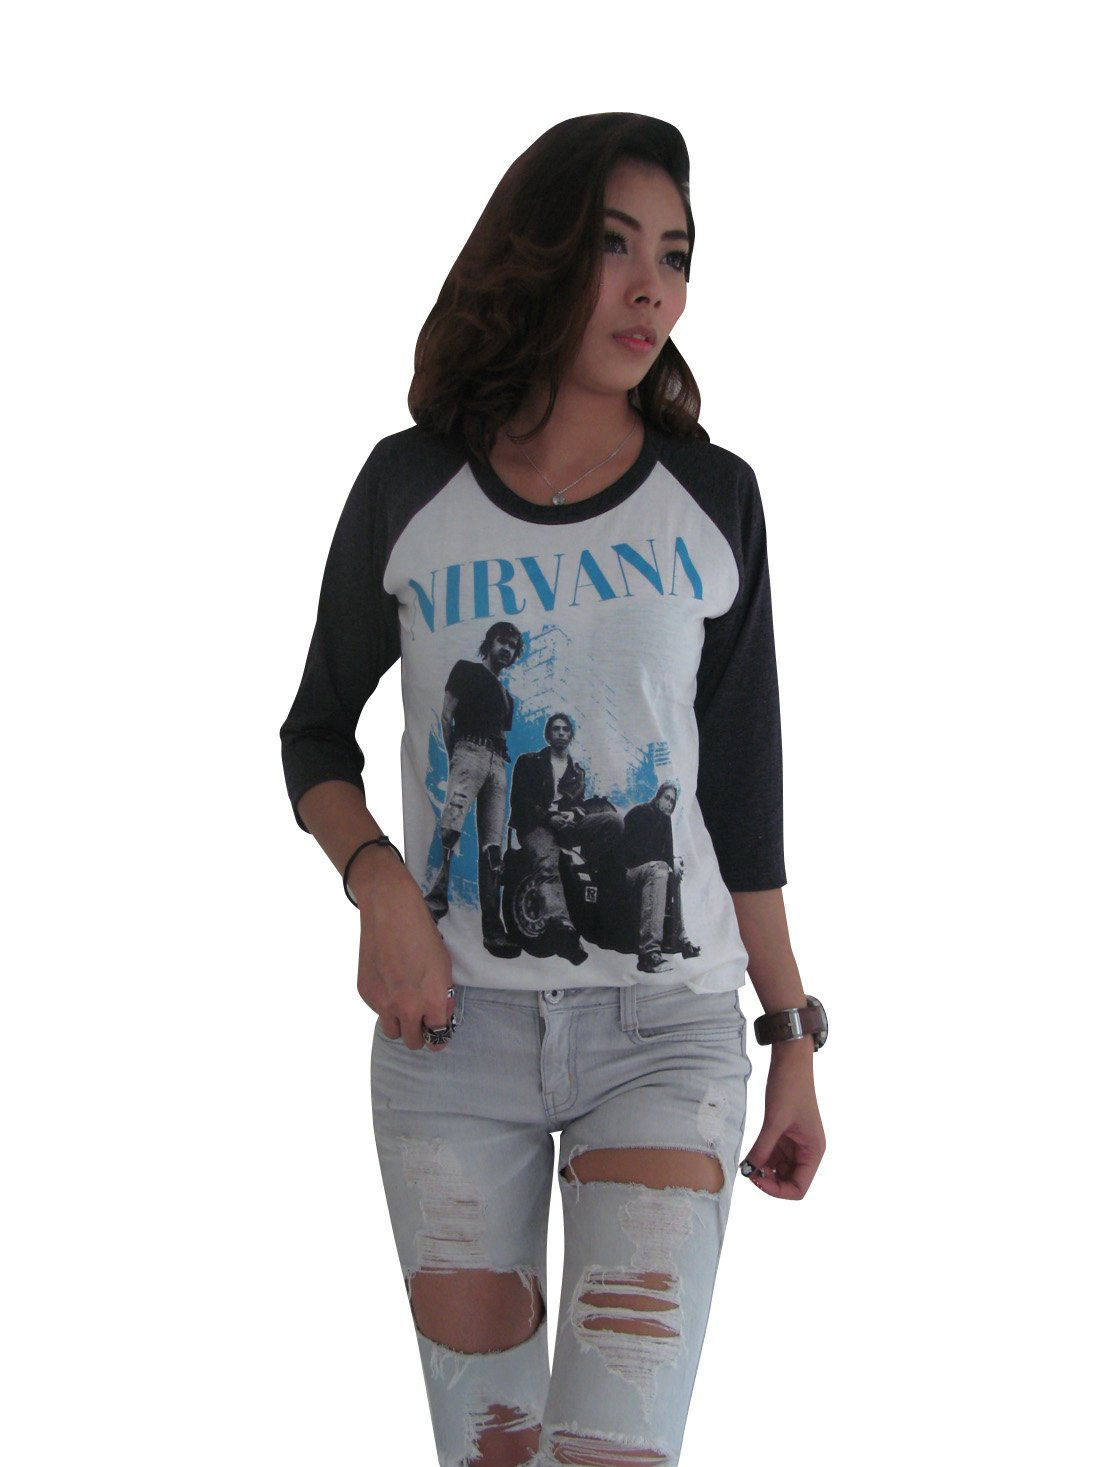 Bunny Brand Women's Rock Band Nirvana Kurt Cobain Group photo Music Raglan T-Shirt,Medium